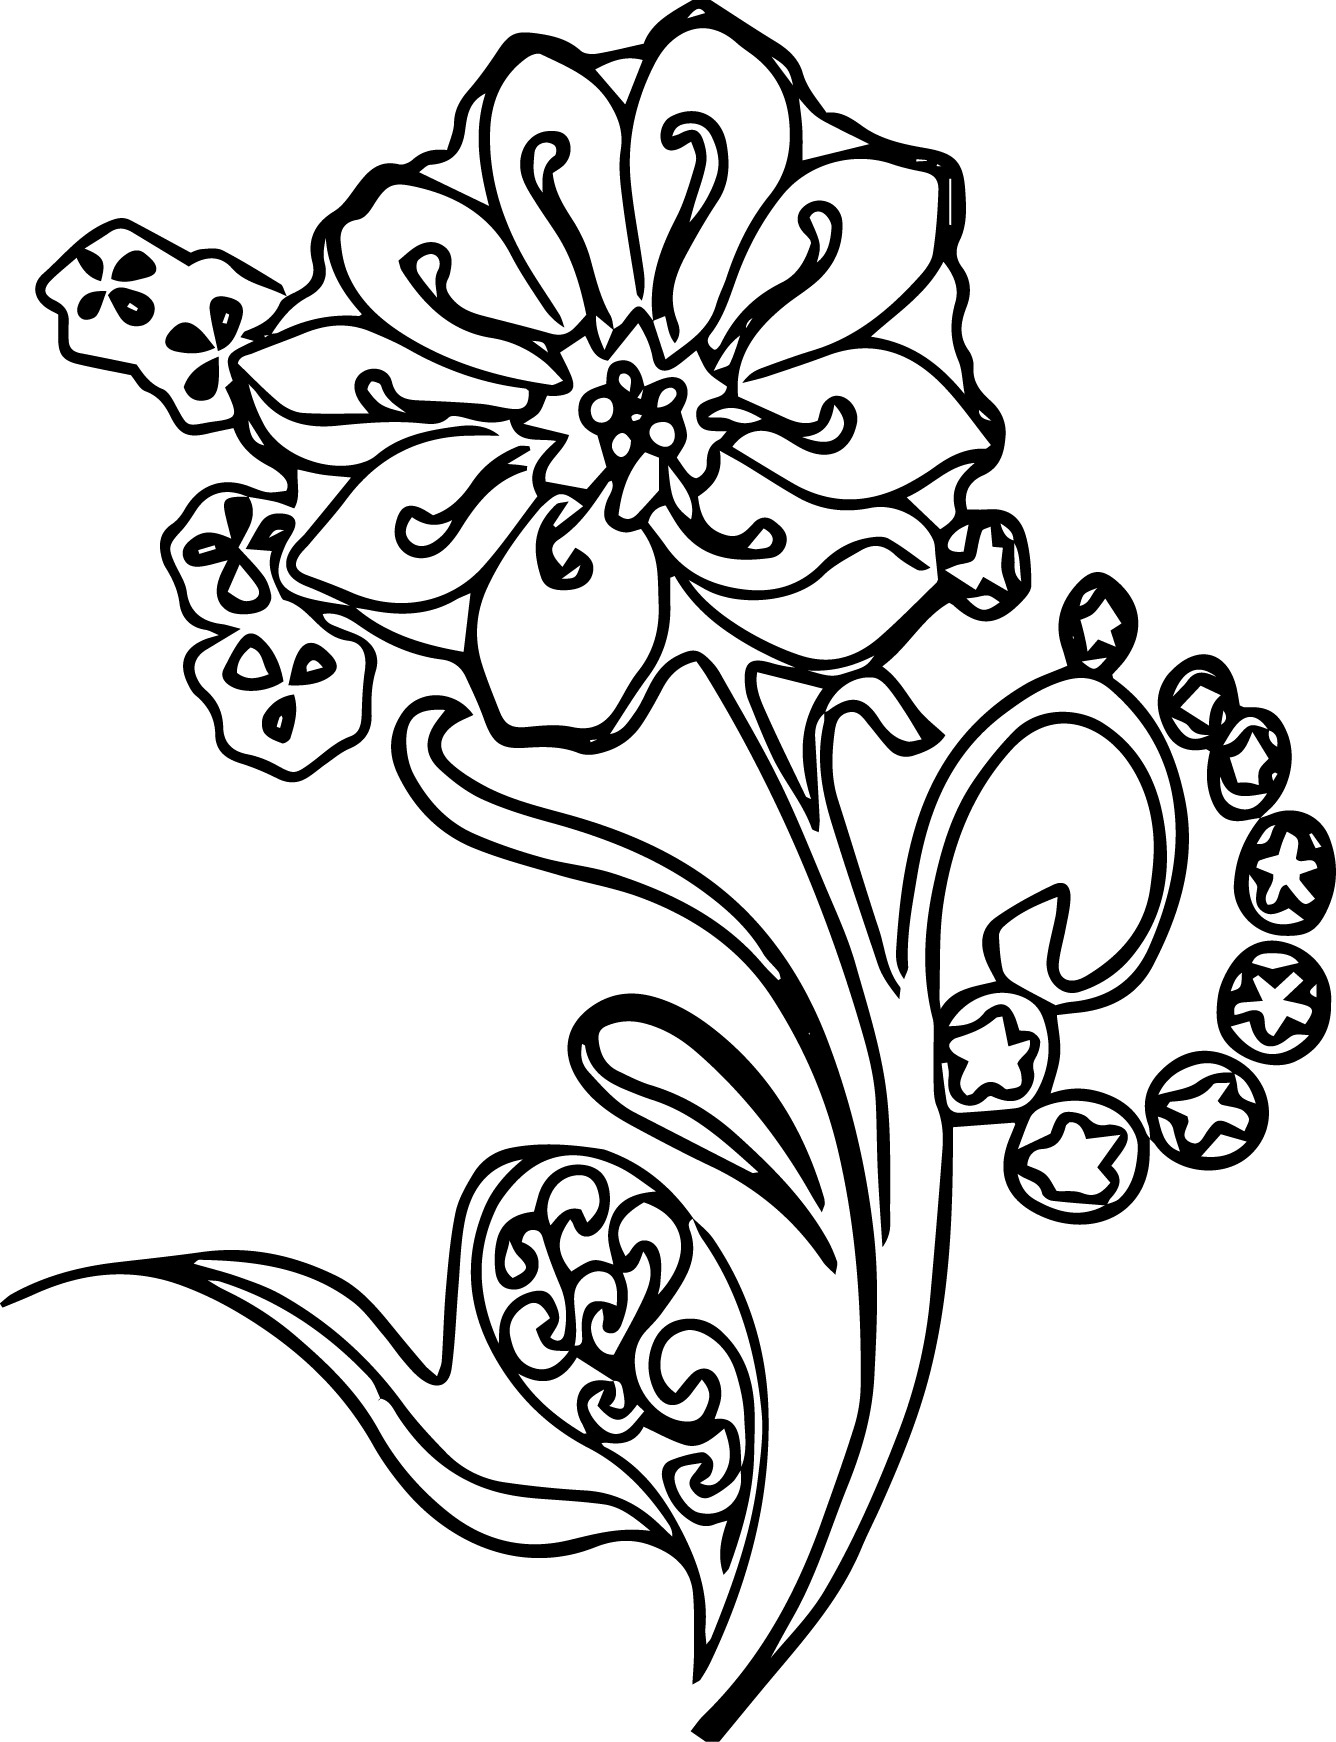 abstract coloring pages - abstract coloring pages